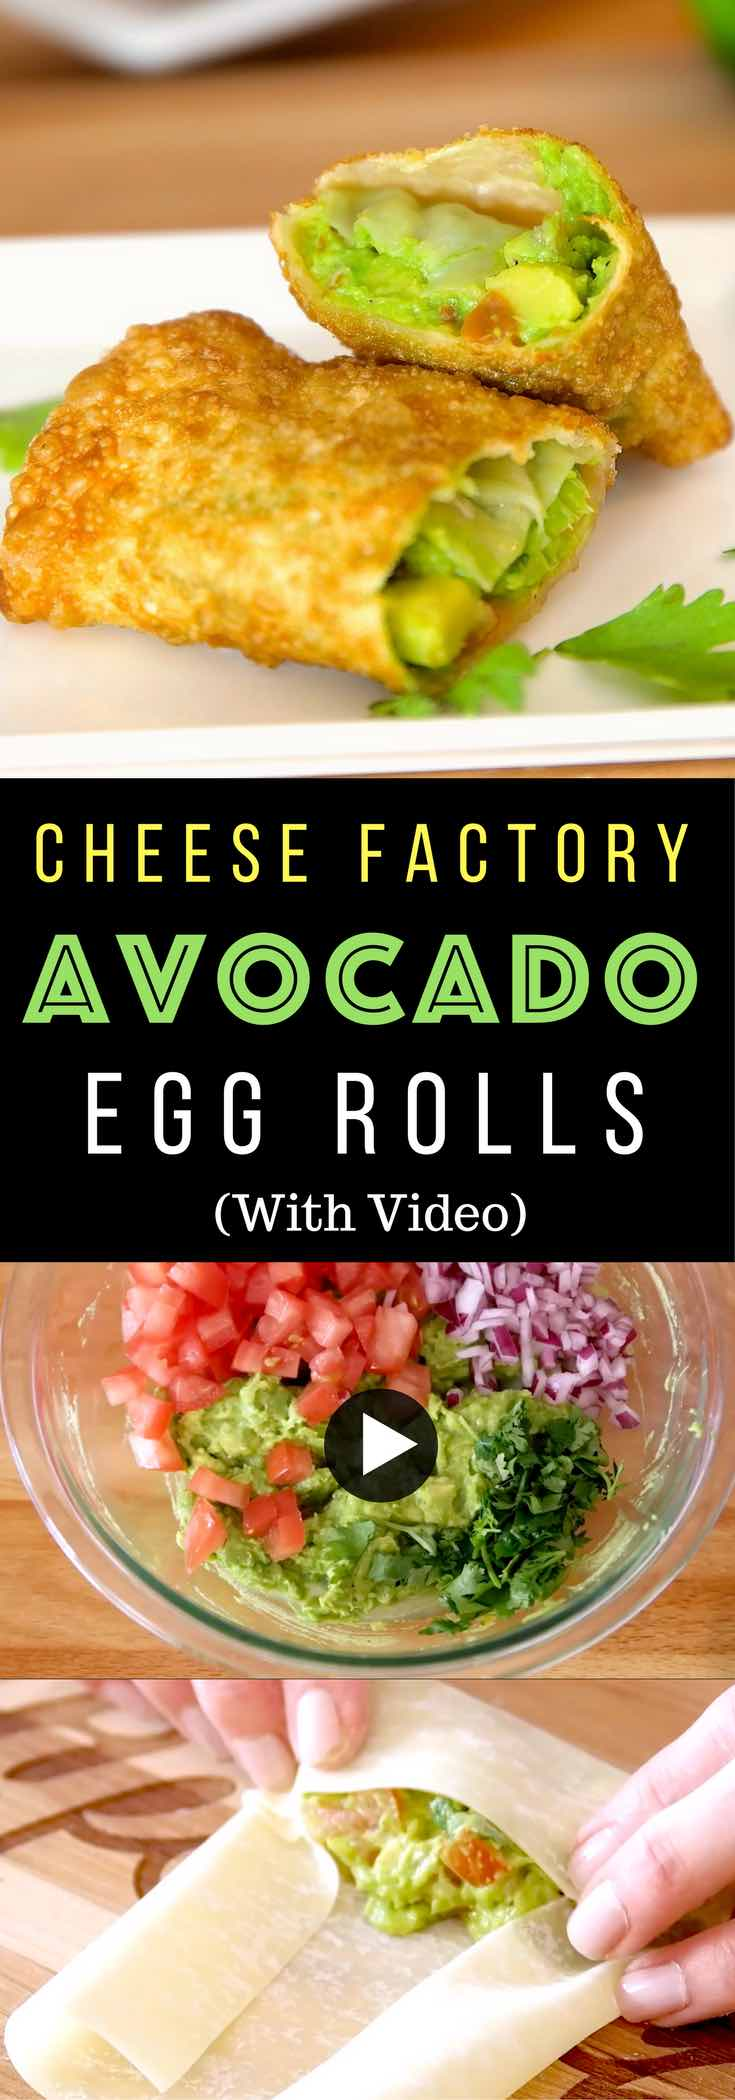 Copycat Avocado Egg Rolls - So tasty and so easy to make! All you need is only a few simple ingredients: egg rolls, avocado, cilantro, tomato, red onion, limes and oil! So Good! Quick and easy recipe! Party food and game day recipe. Appetizers. Video recipe. | Tipbuzz.com